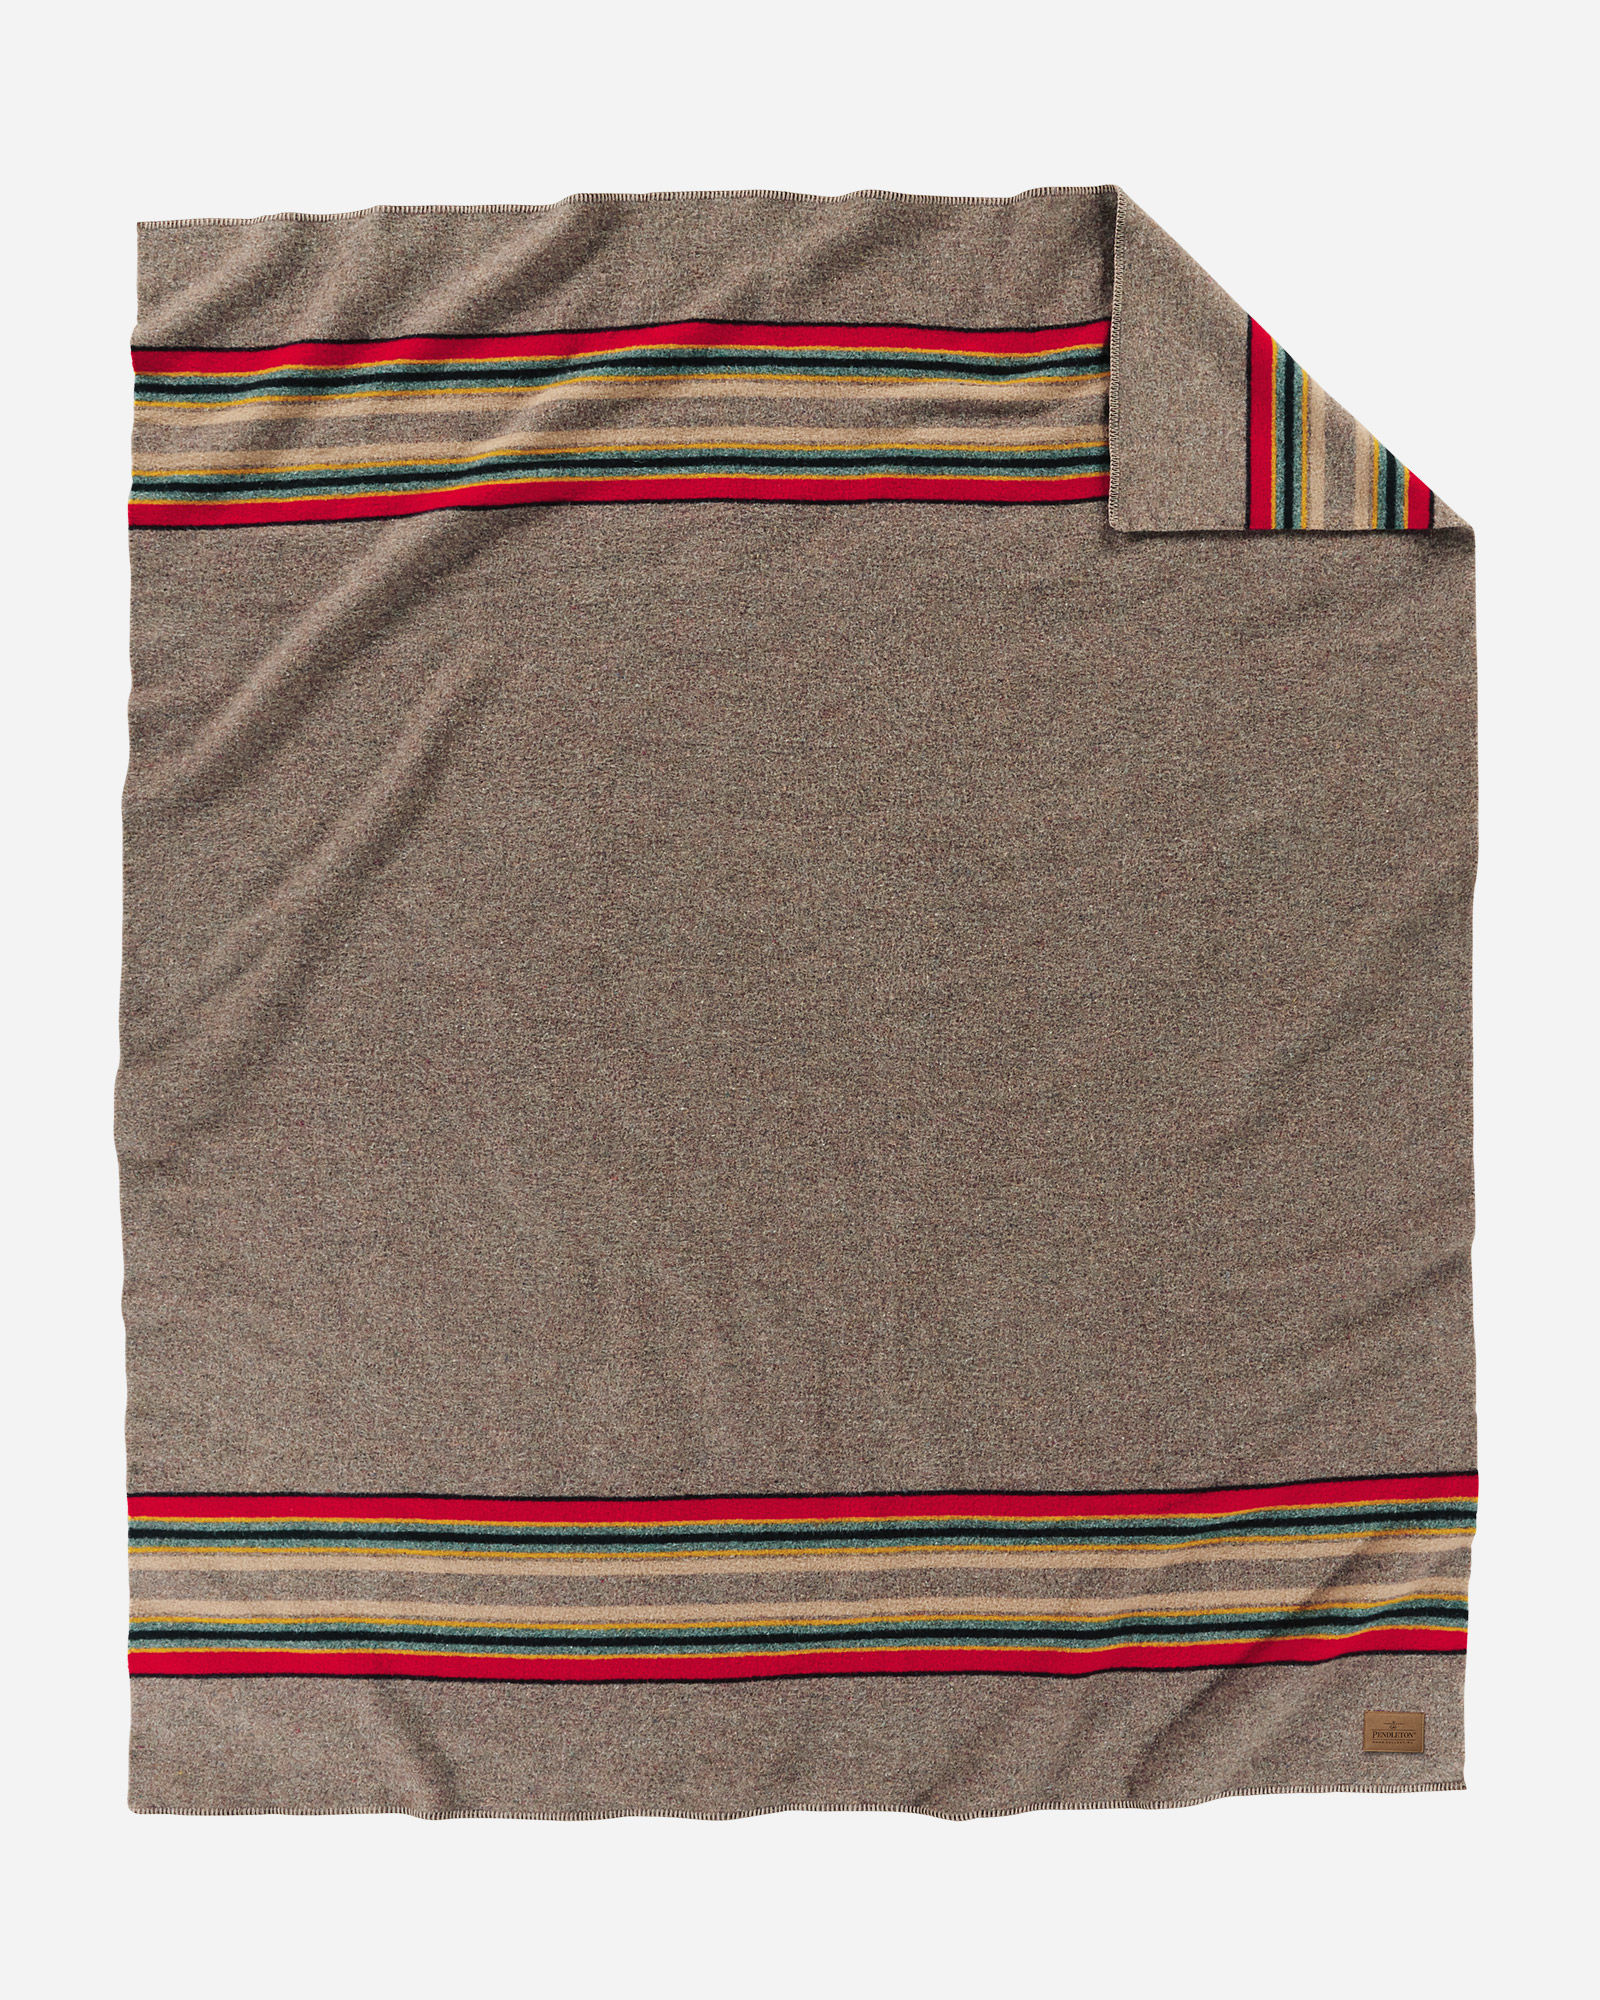 A Yakima Camp blanket in heathered taupe, with bands of red, green and tan at each end. By Pendleton.